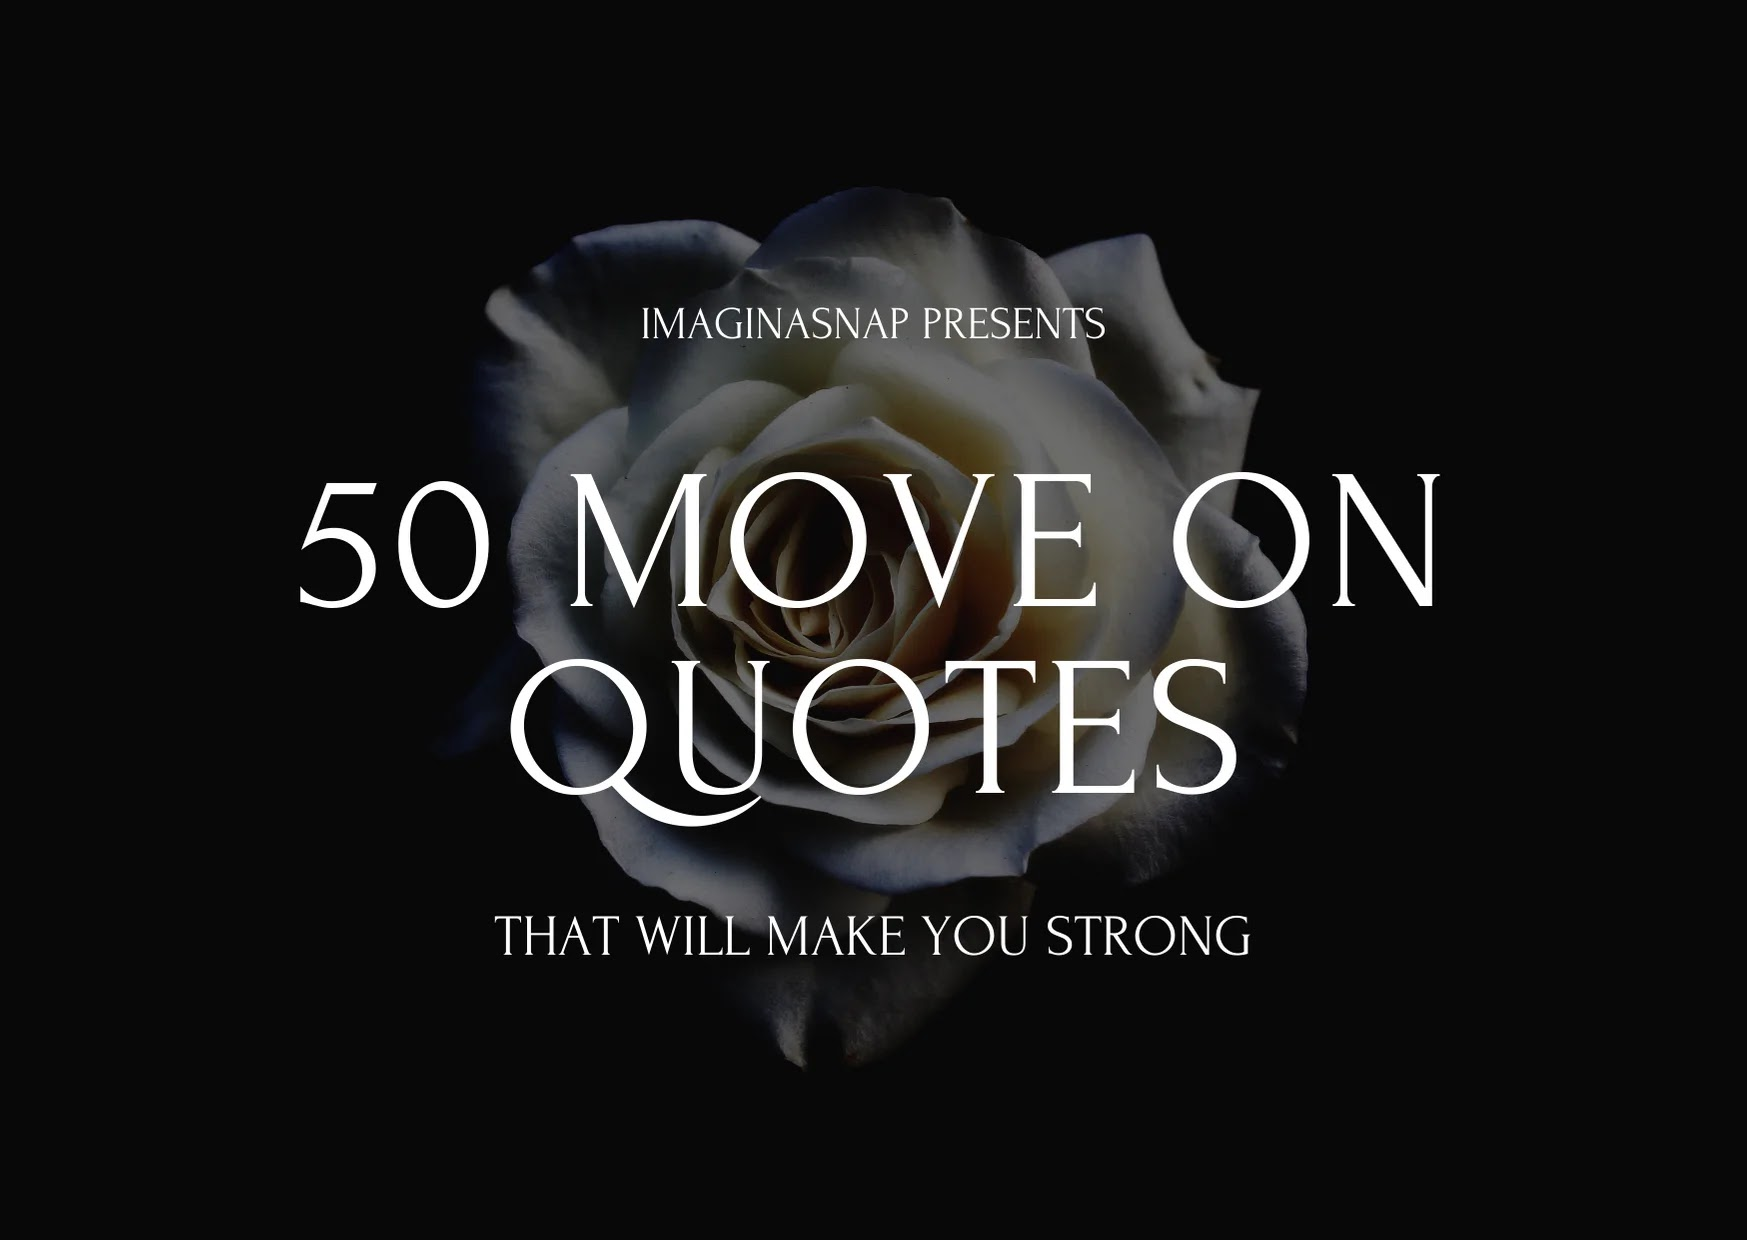 move on quotes that will make you strong